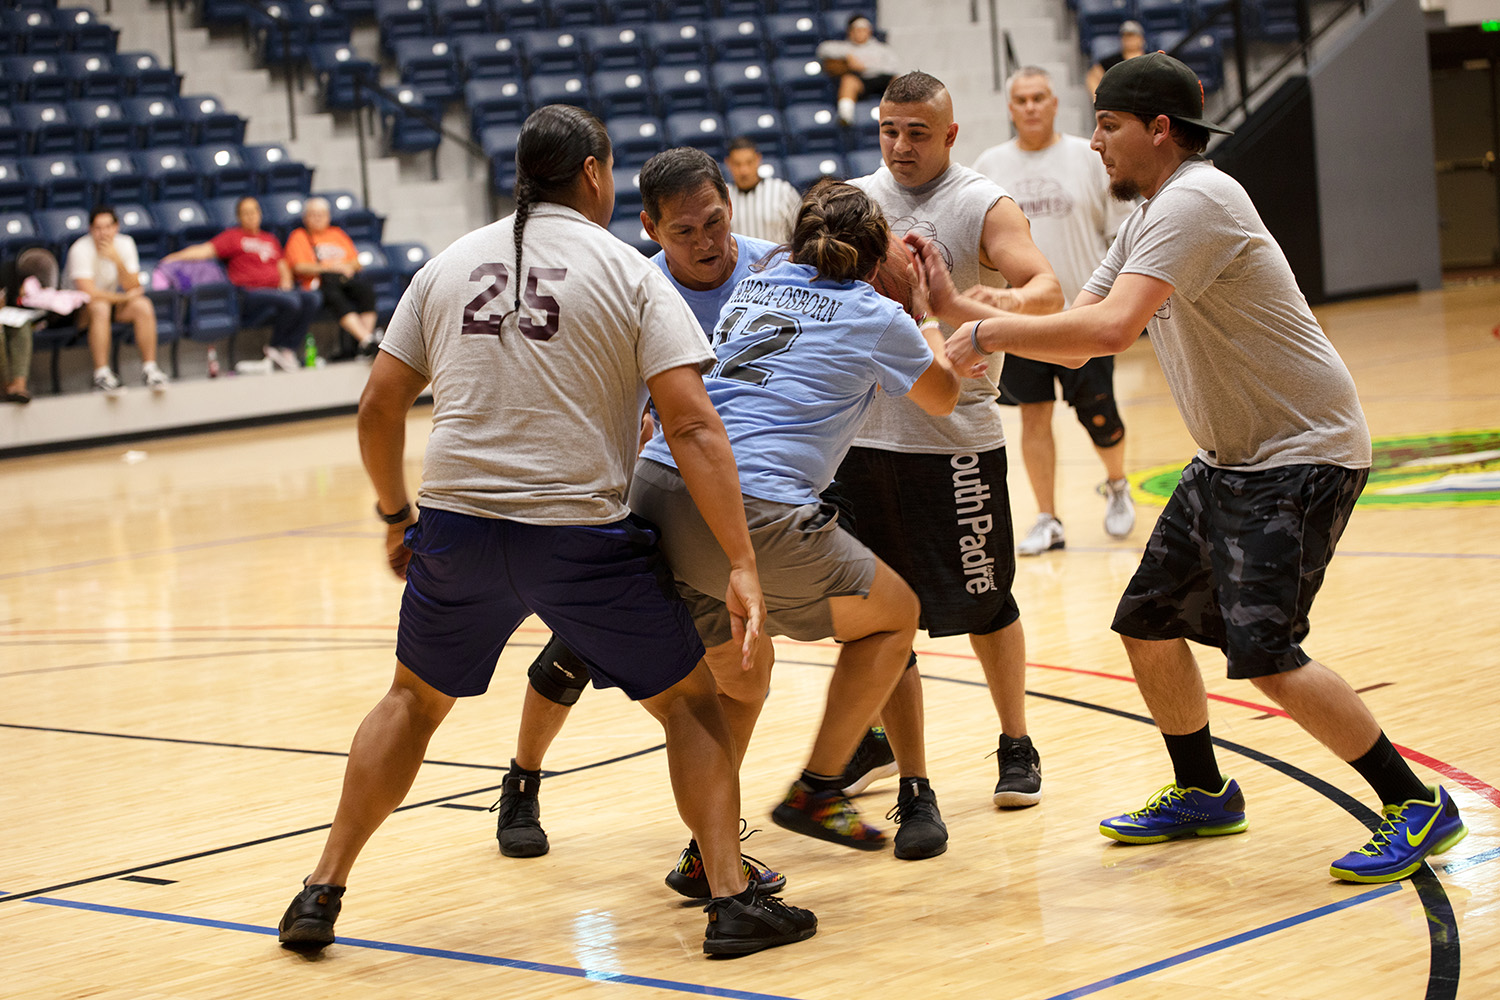 Lighthorse wins rematch against National Council, CMN takes win against Higher Ed.